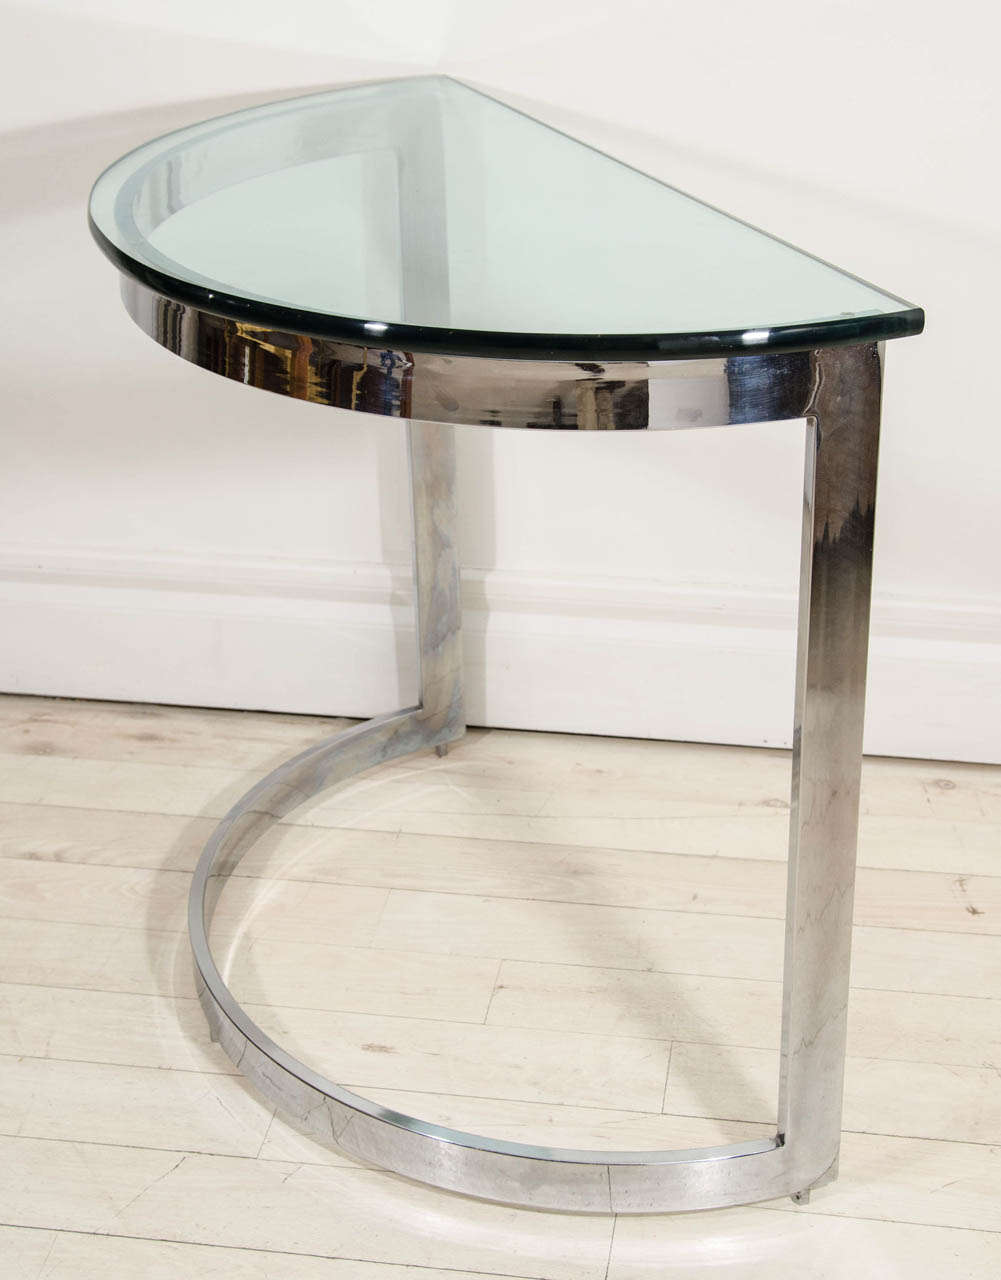 Pair Of Chrome And Glass Demilune Console Tables.